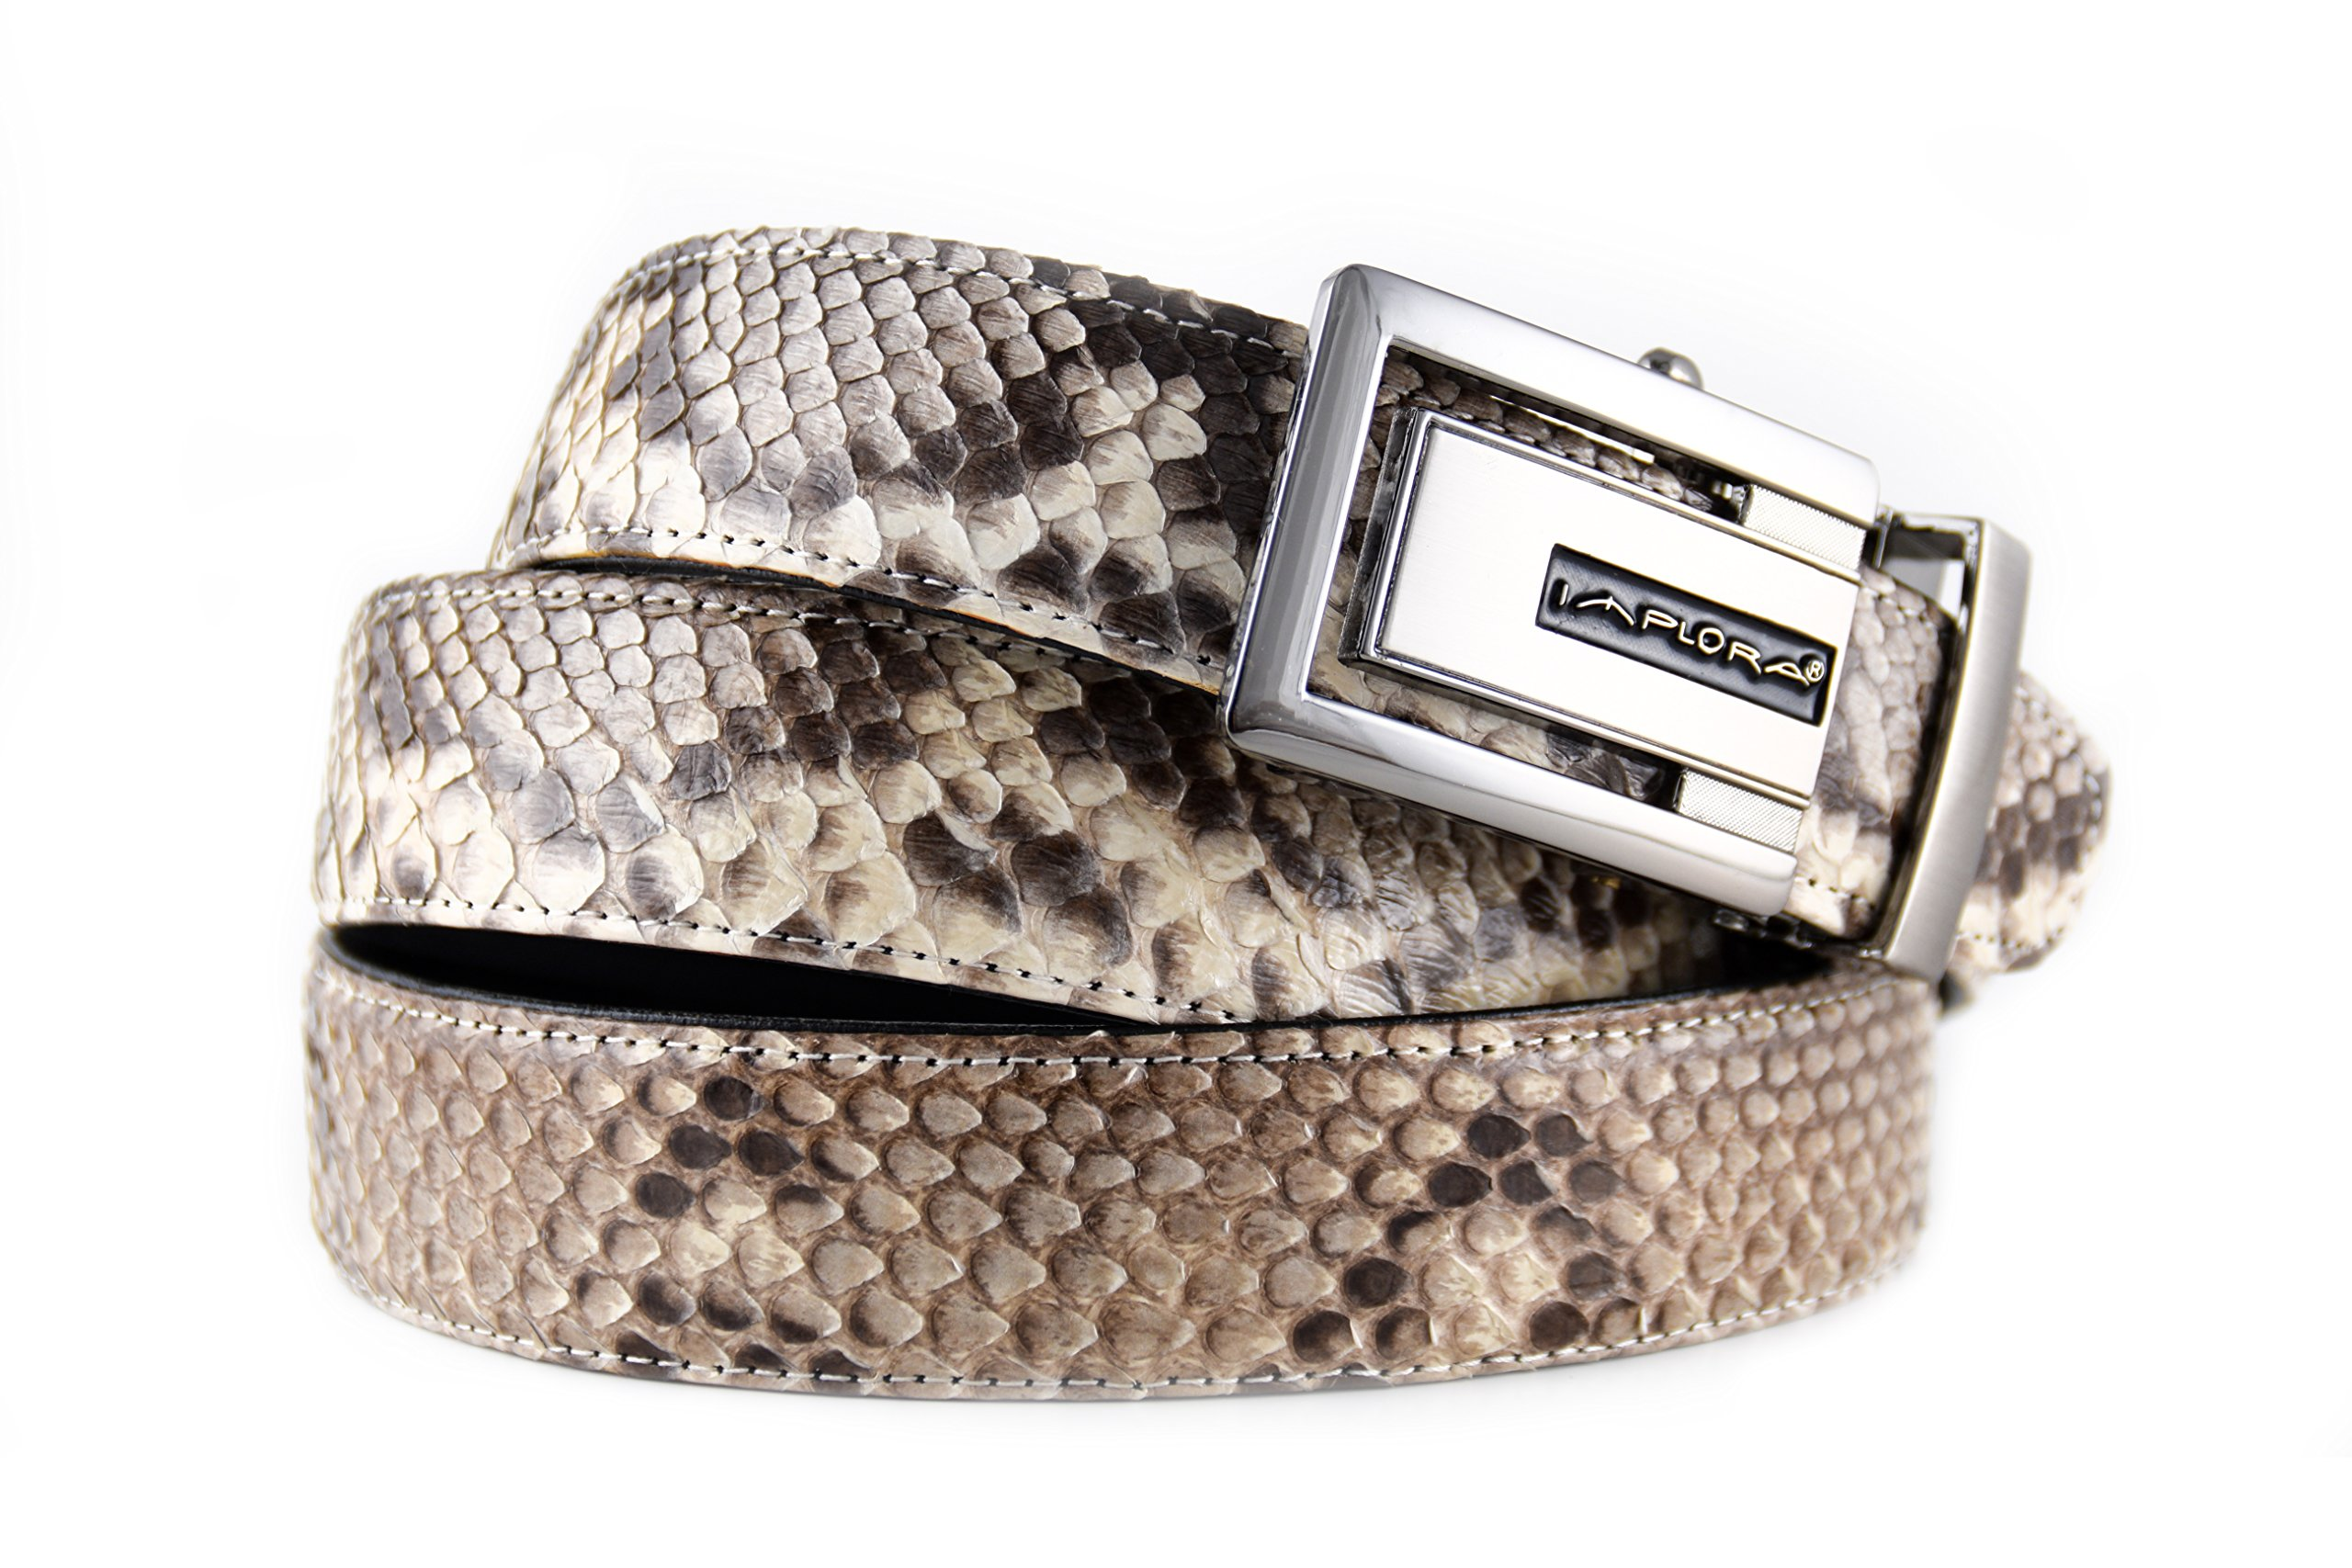 Implora Genuine Python Snakeskin Belt